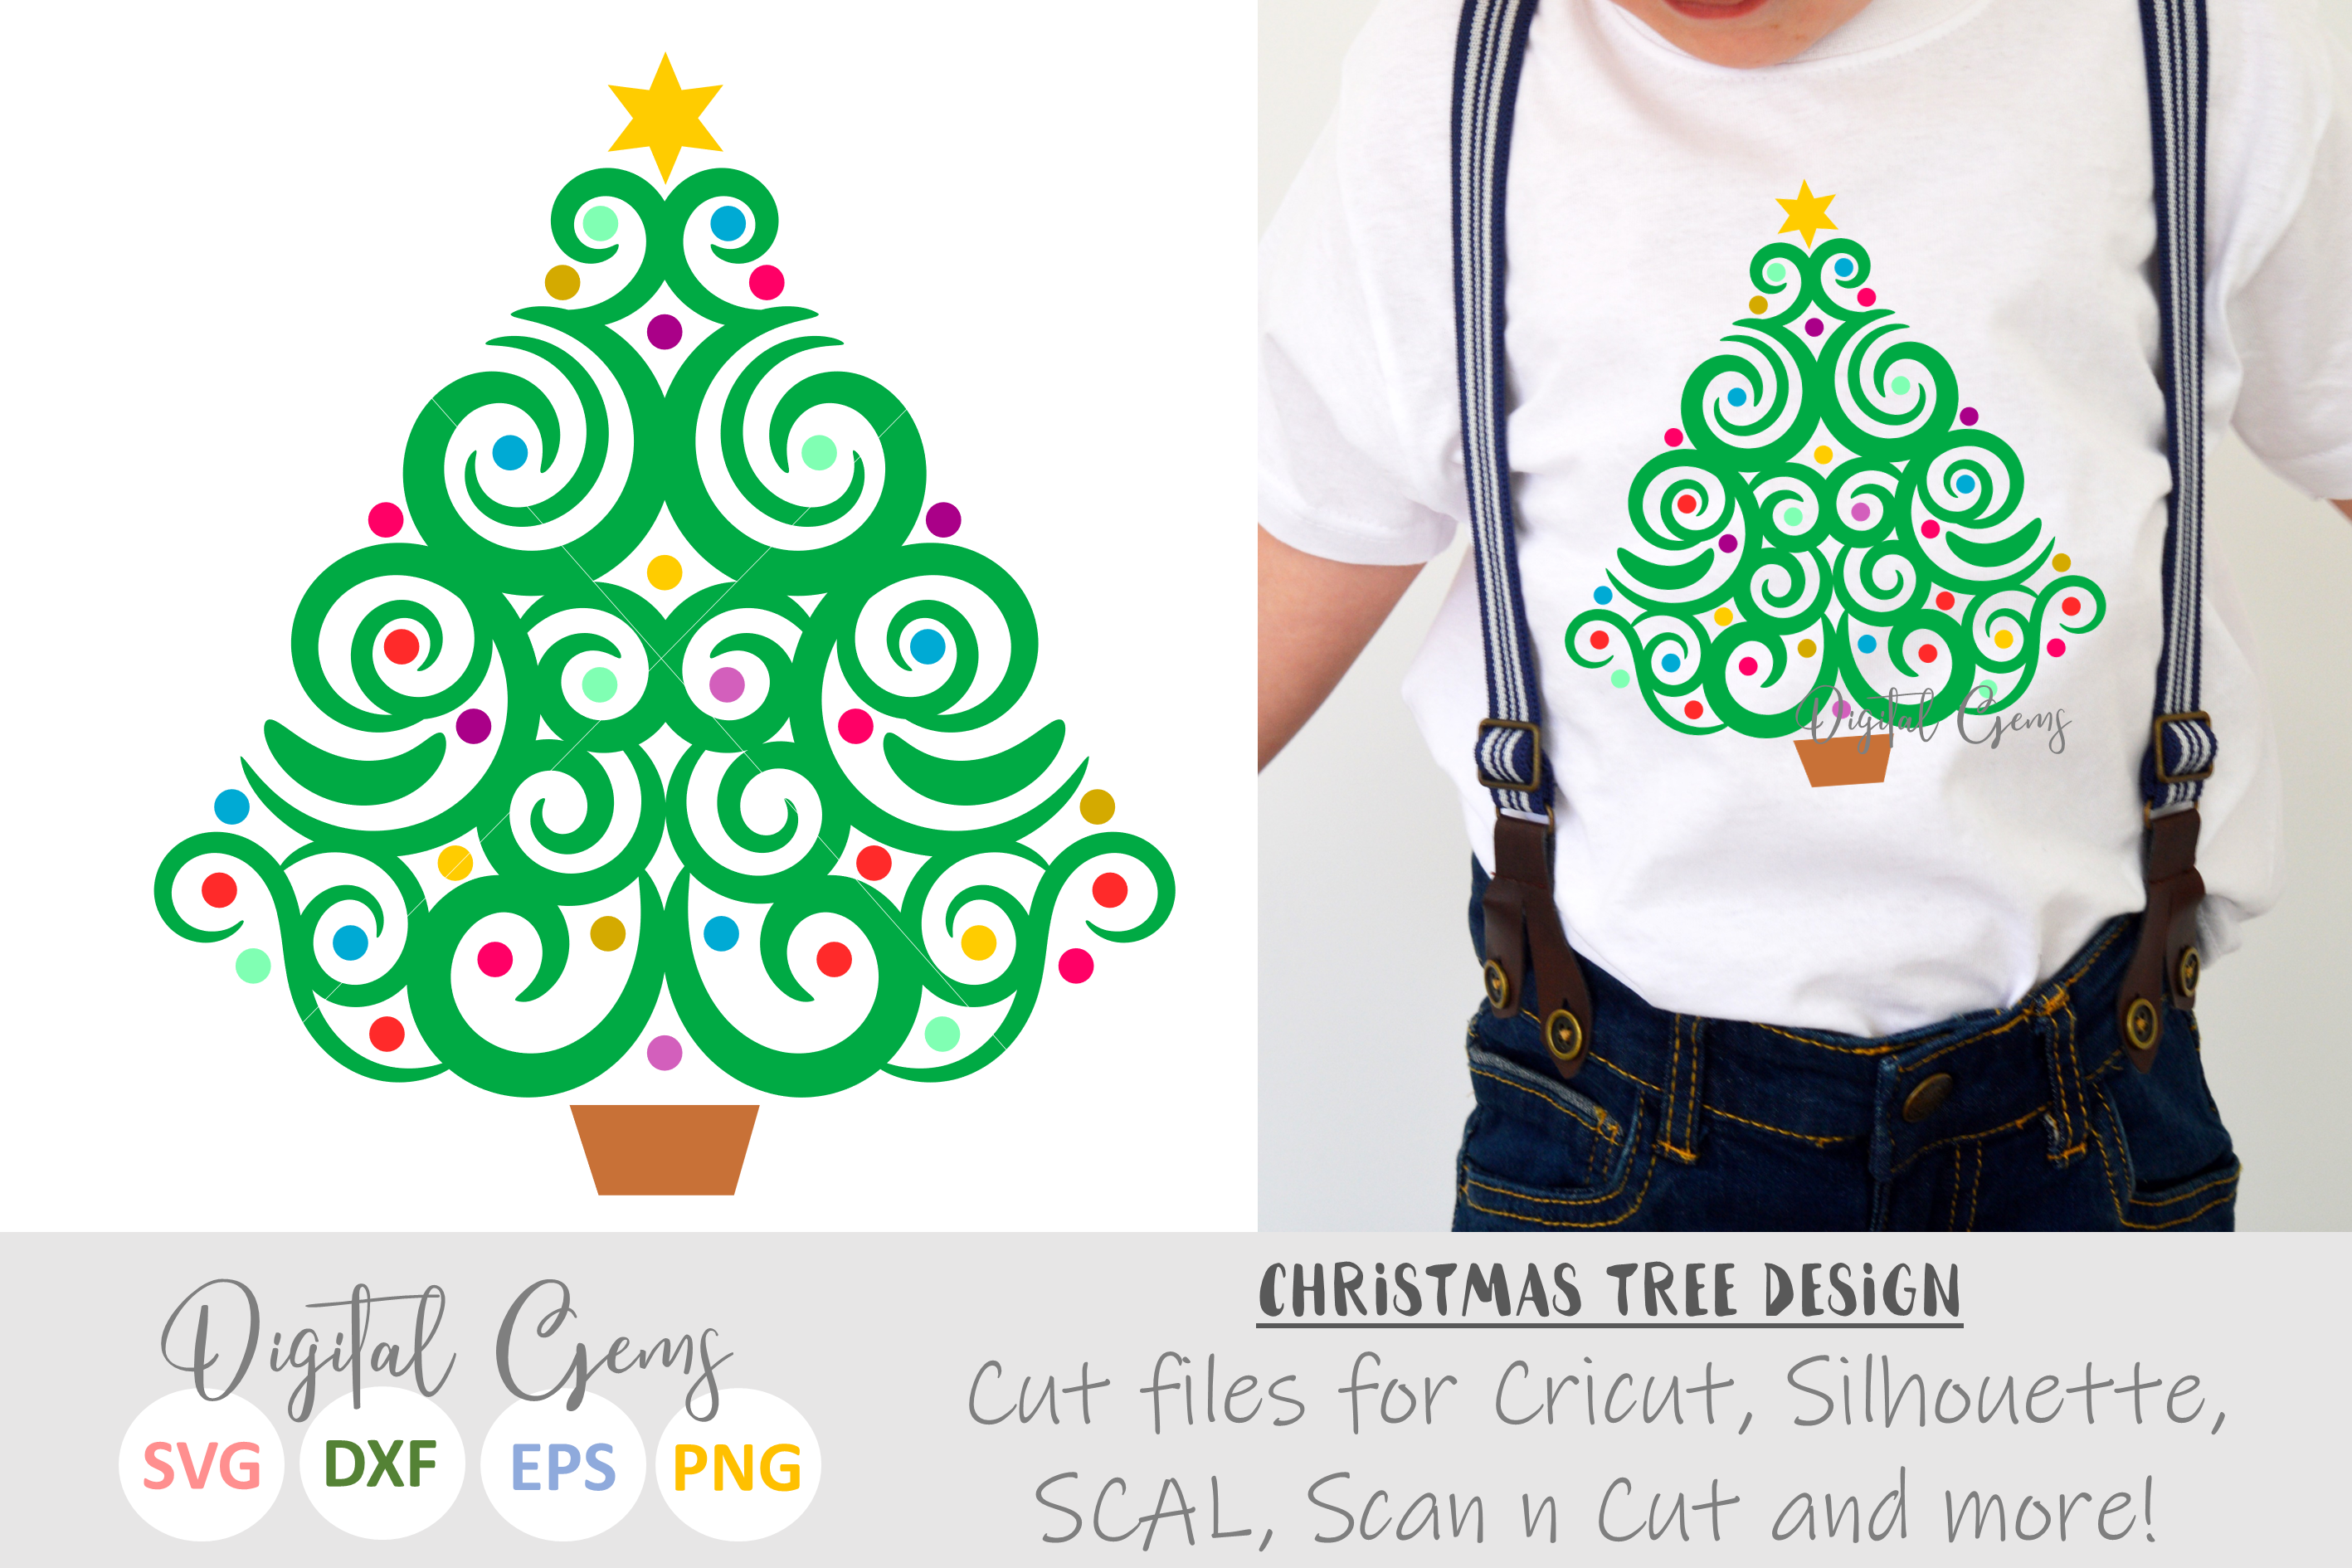 Christmas tree SVG / EPS / DXF / PNG Files example image 1